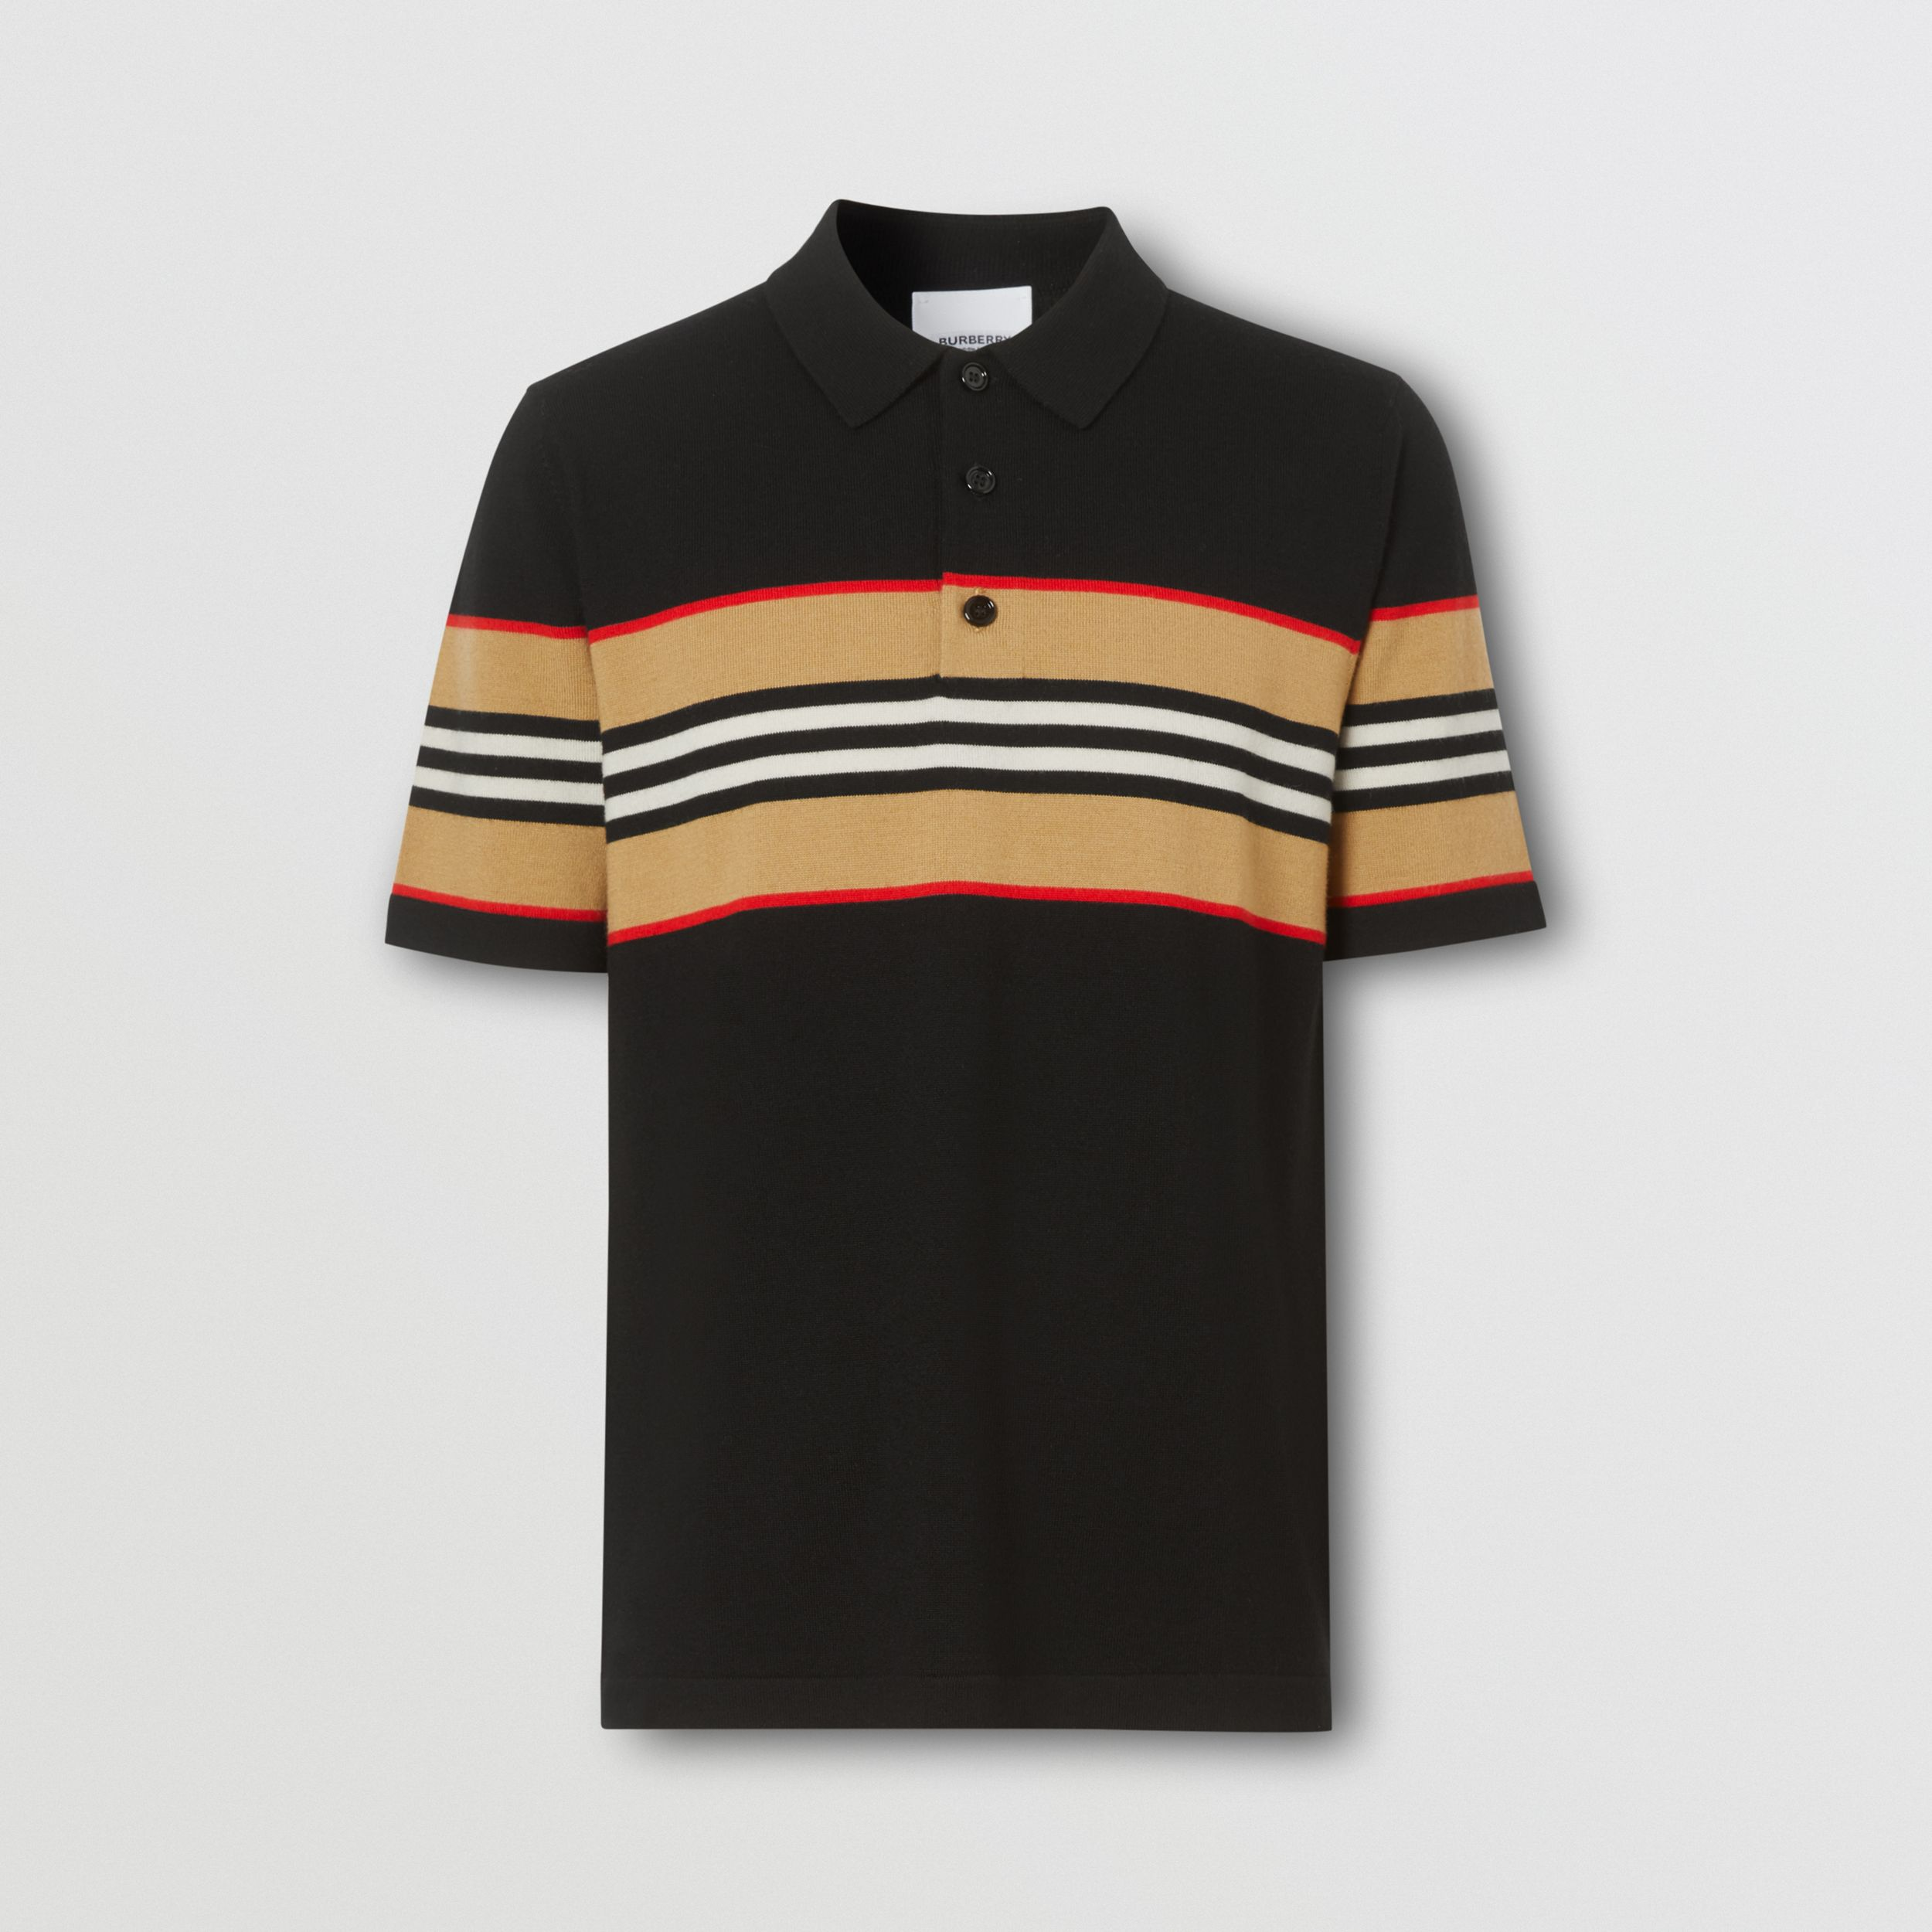 Icon Stripe Detail Merino Wool Polo Shirt in Black - Men | Burberry - 4